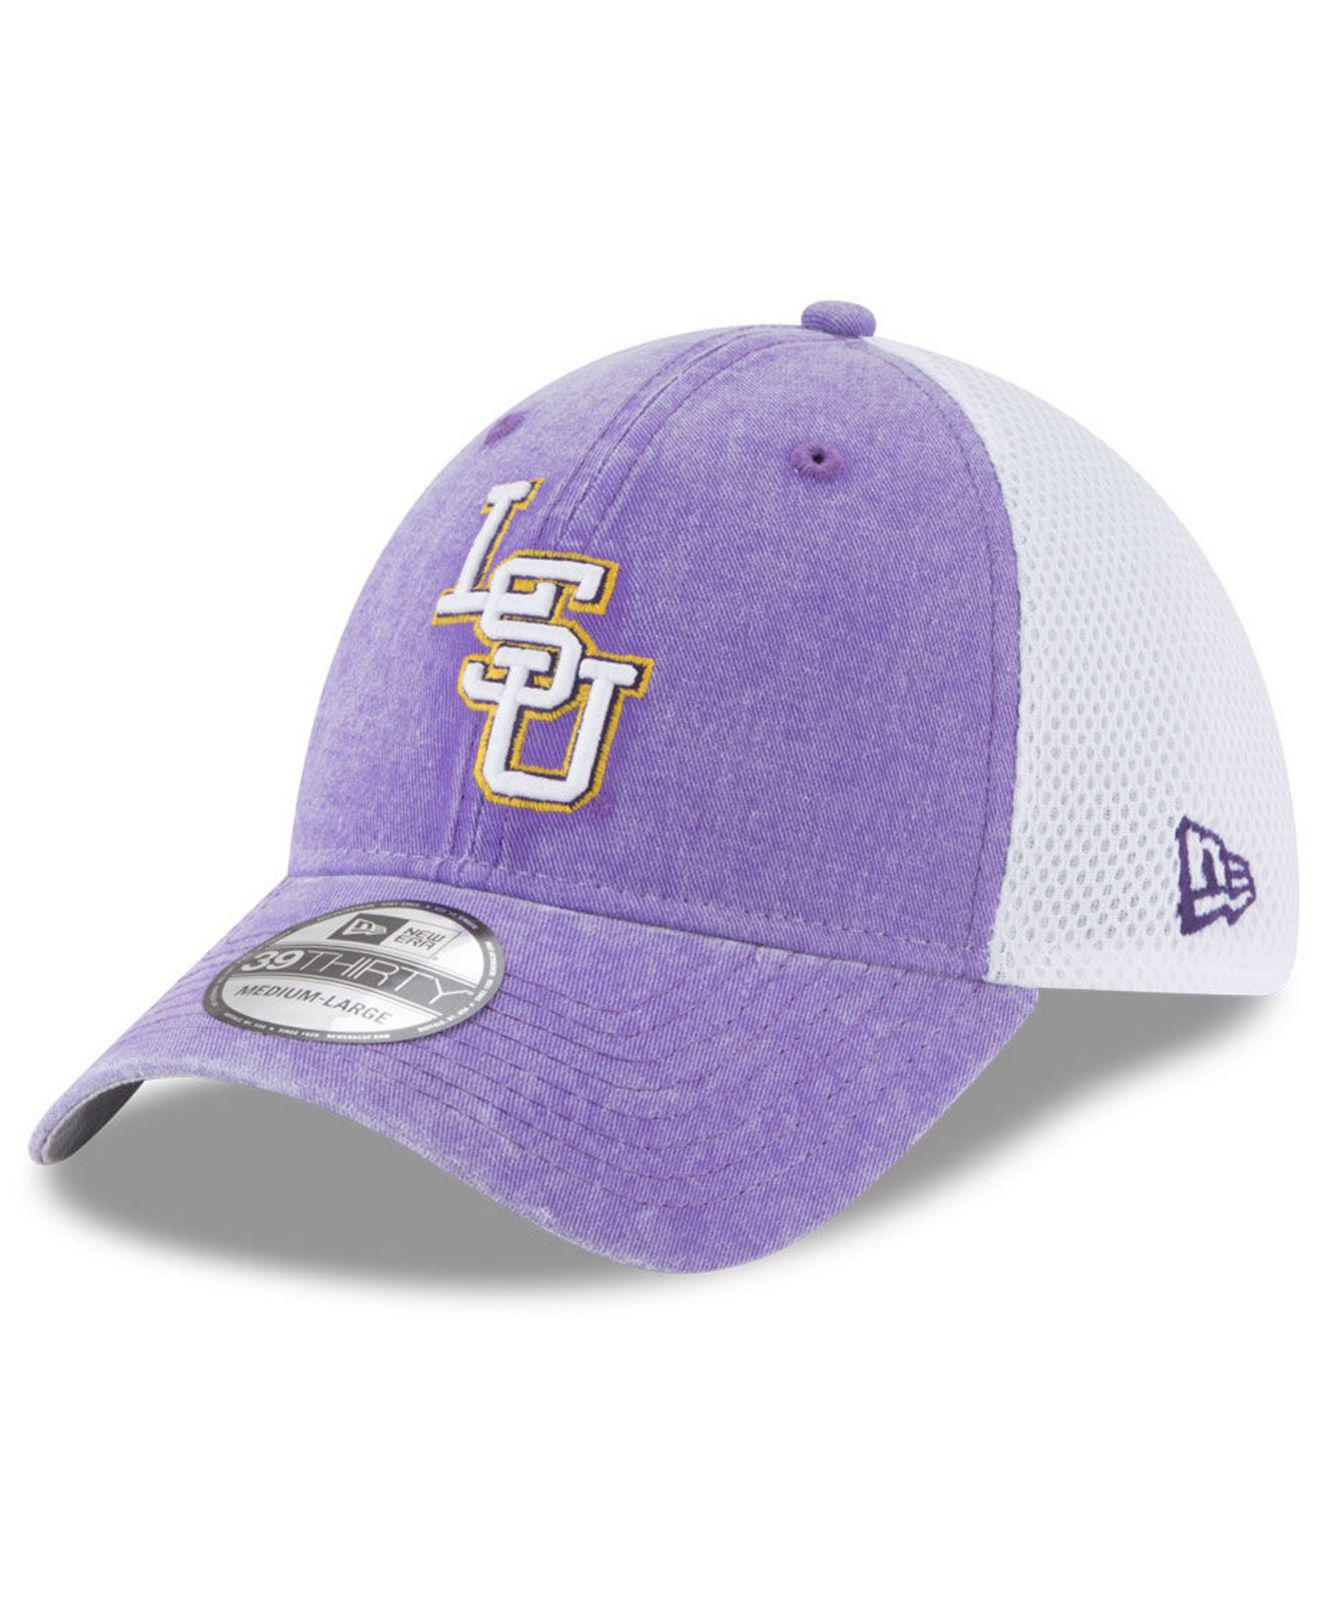 quality design d17e1 43a62 ... aliexpress lyst ktz lsu tigers washed neo 39thirty cap in purple for men  c41e2 71c2d